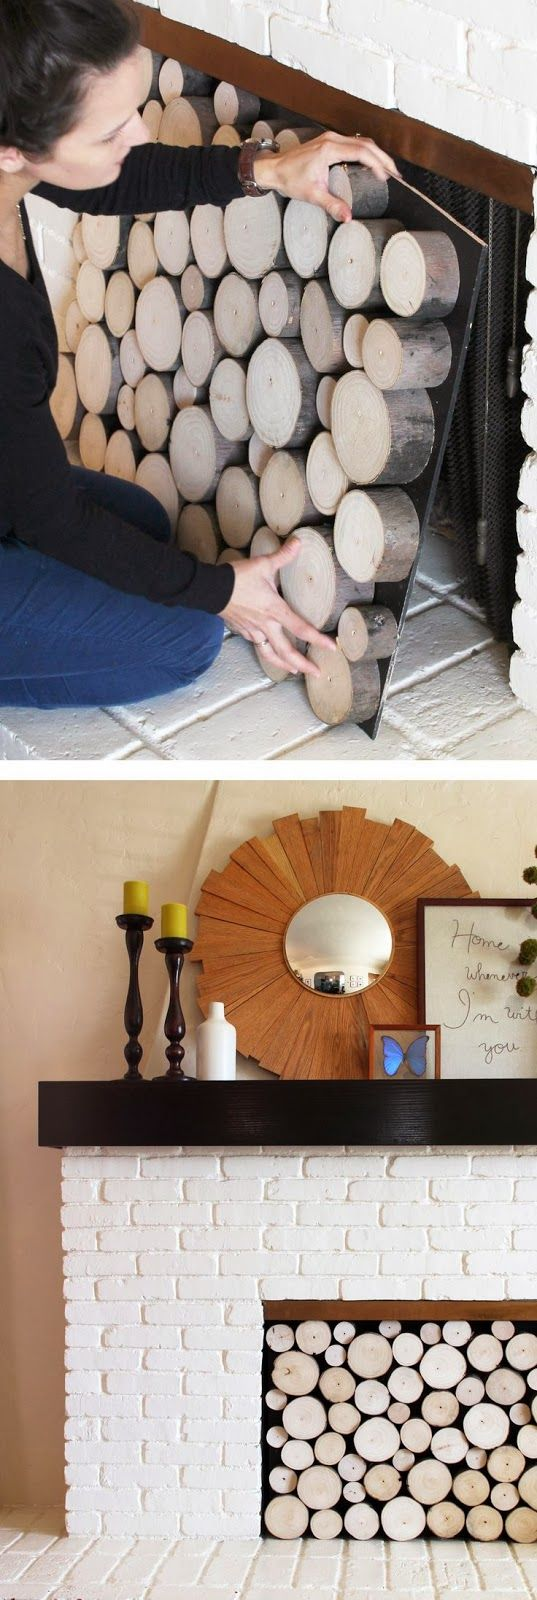 DIY Stacked Wood Fireplace Facade - also great for baby proofing